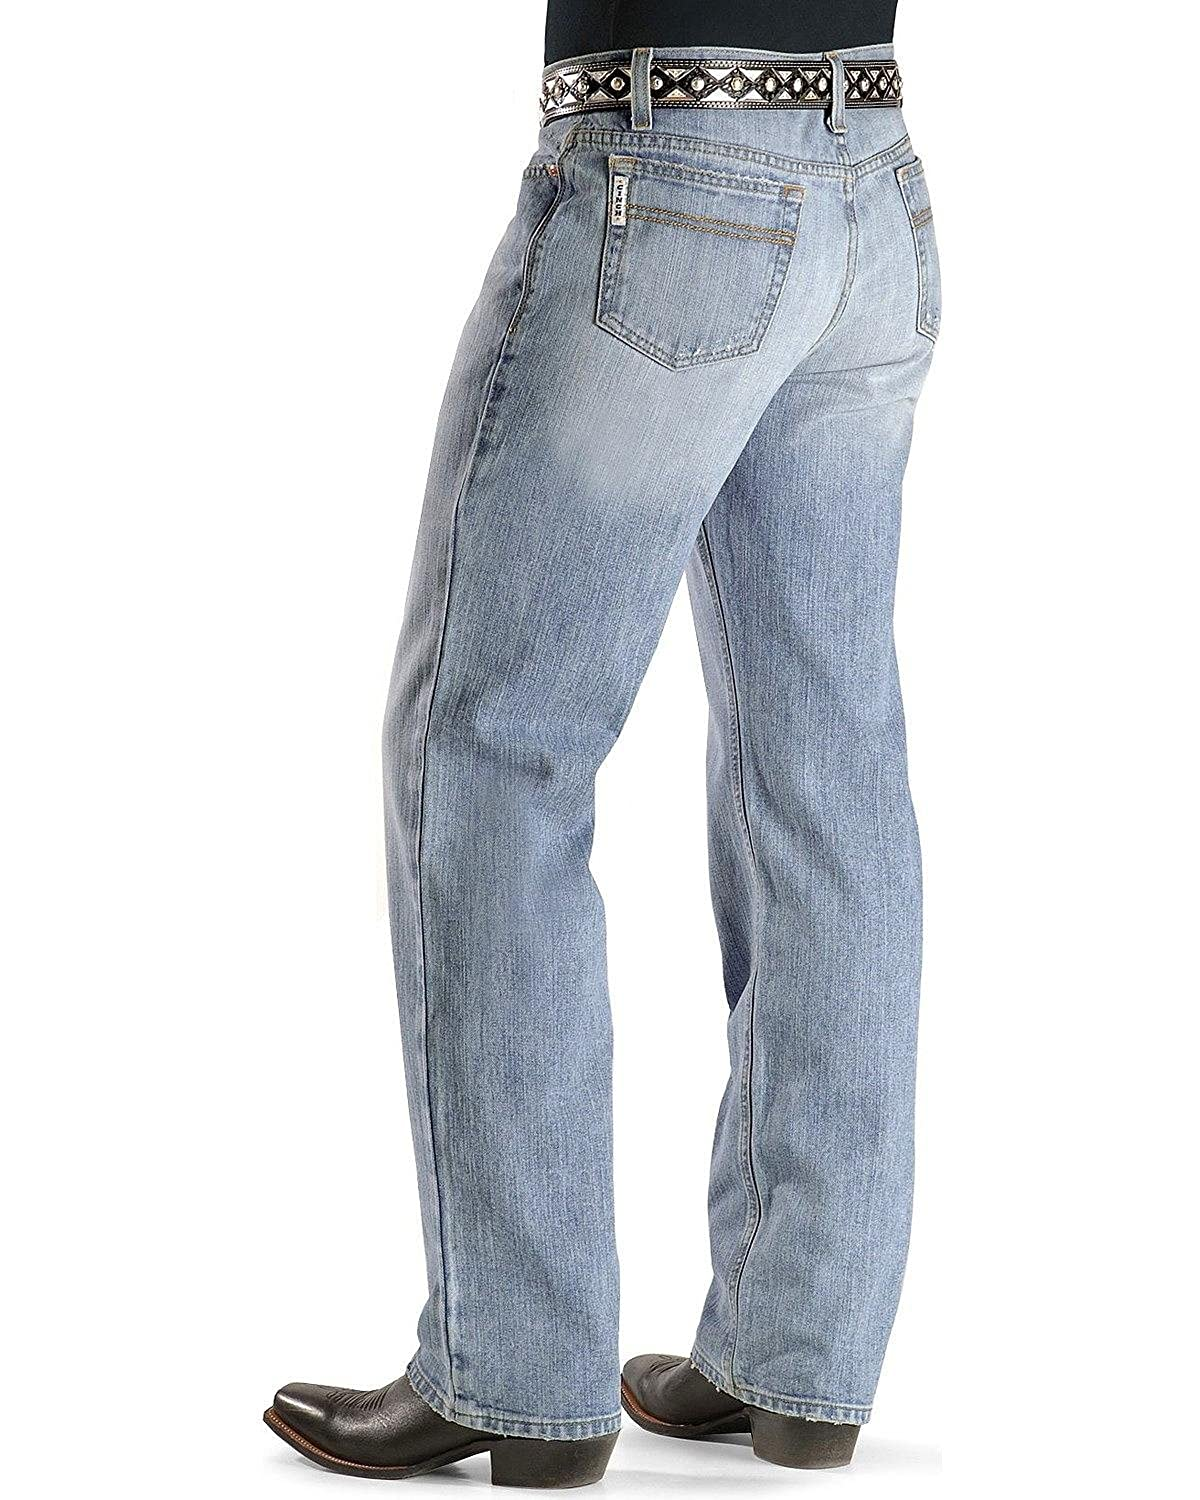 Mb92834012/_X1 Cinch Mens Jeans White Label Relaxed Fit Tall